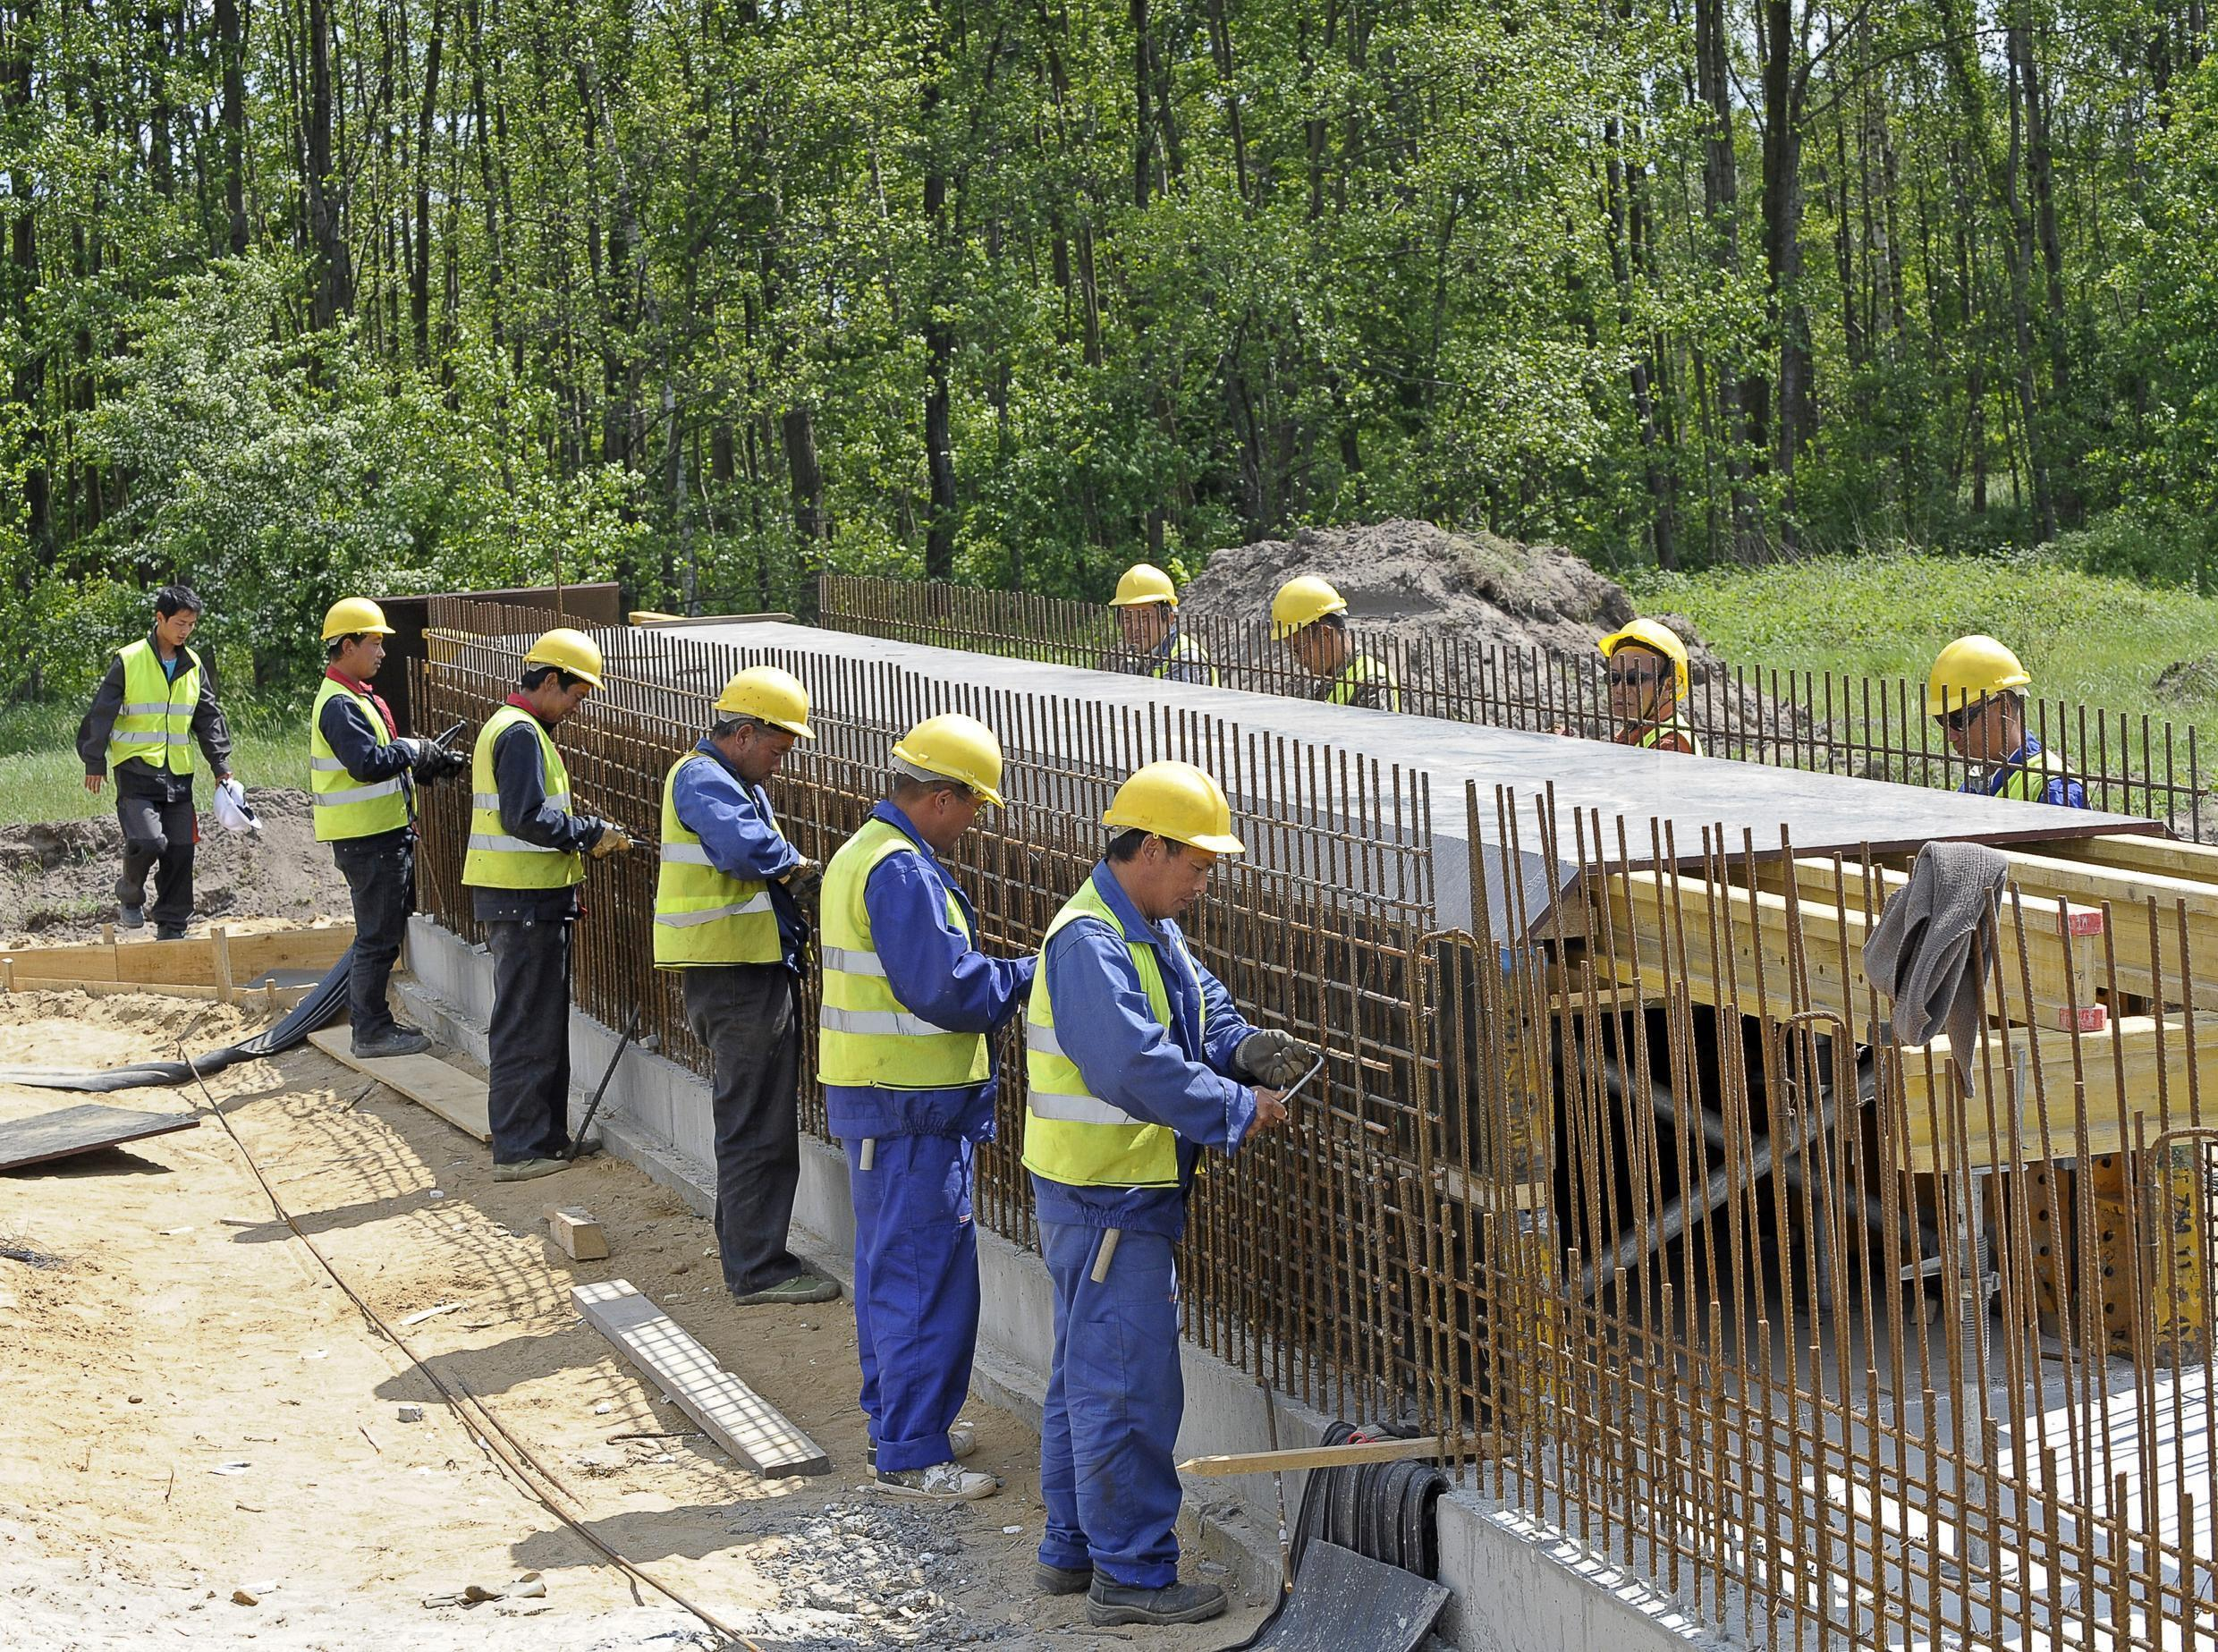 Chinese laborers working on part of the Warsaw-Berlin highway in Poland near Zyrardow (Central Poland)